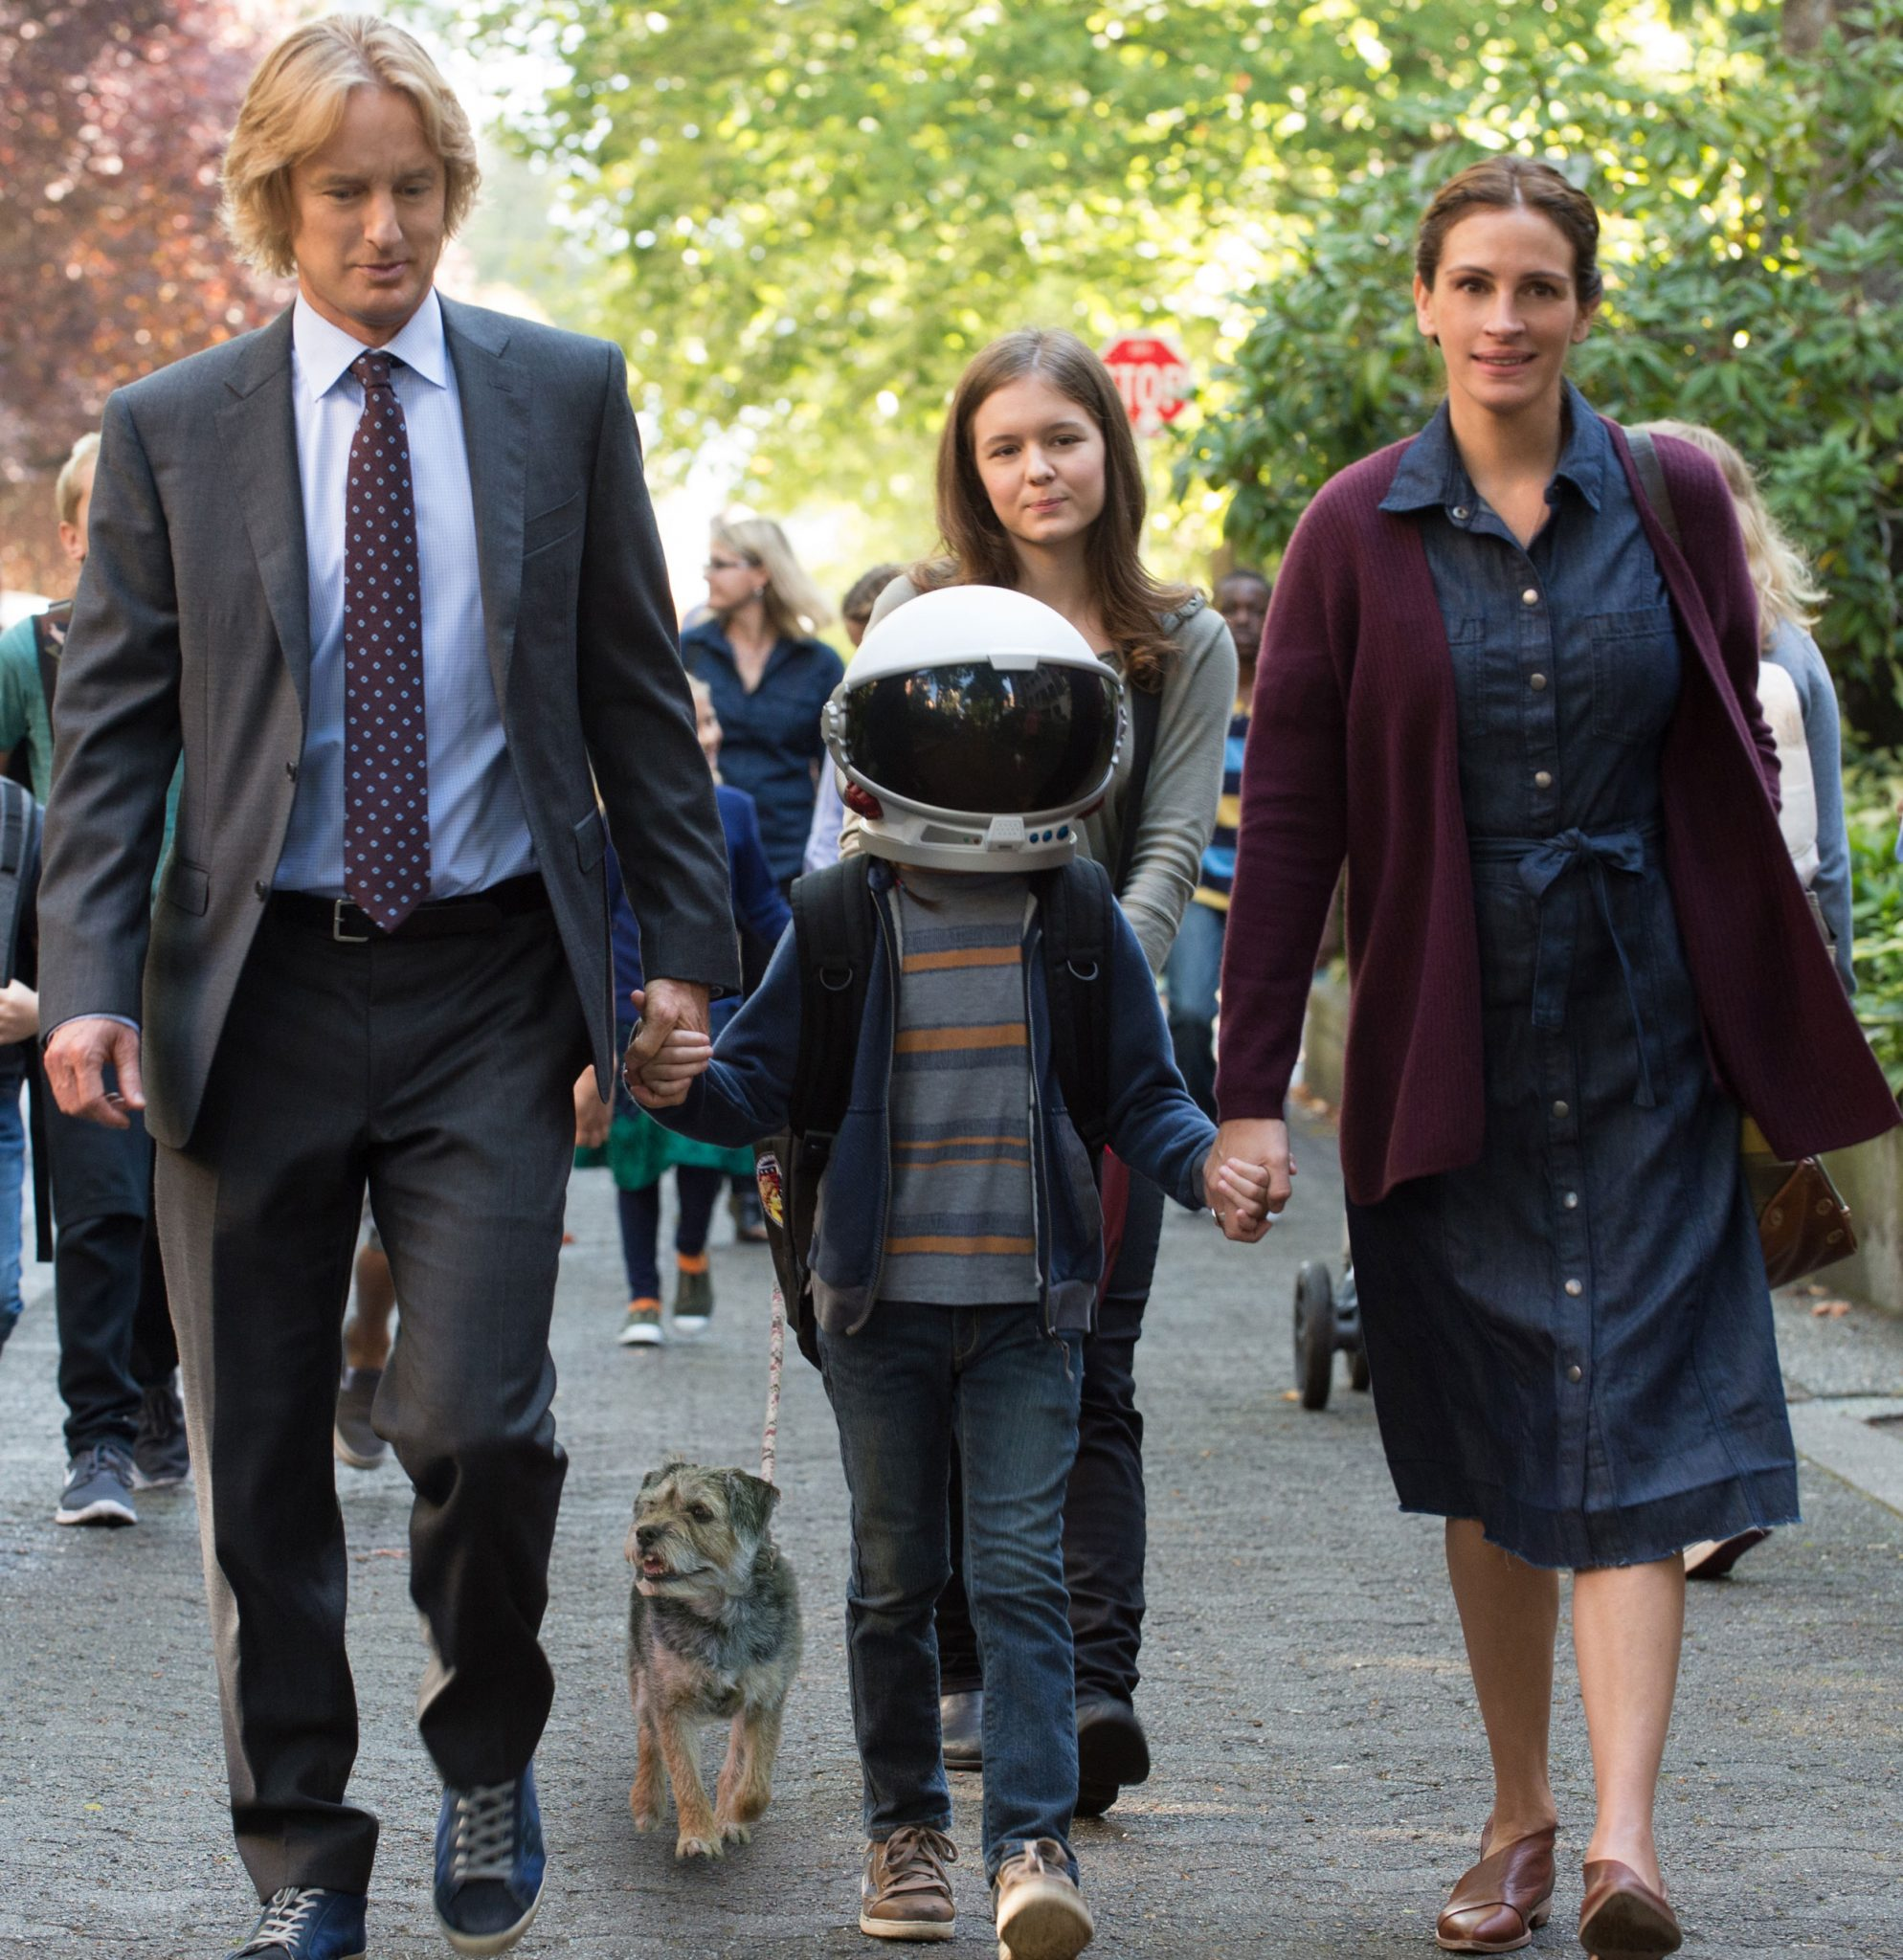 Wonder the Movie – Our Review *contains spoilers*